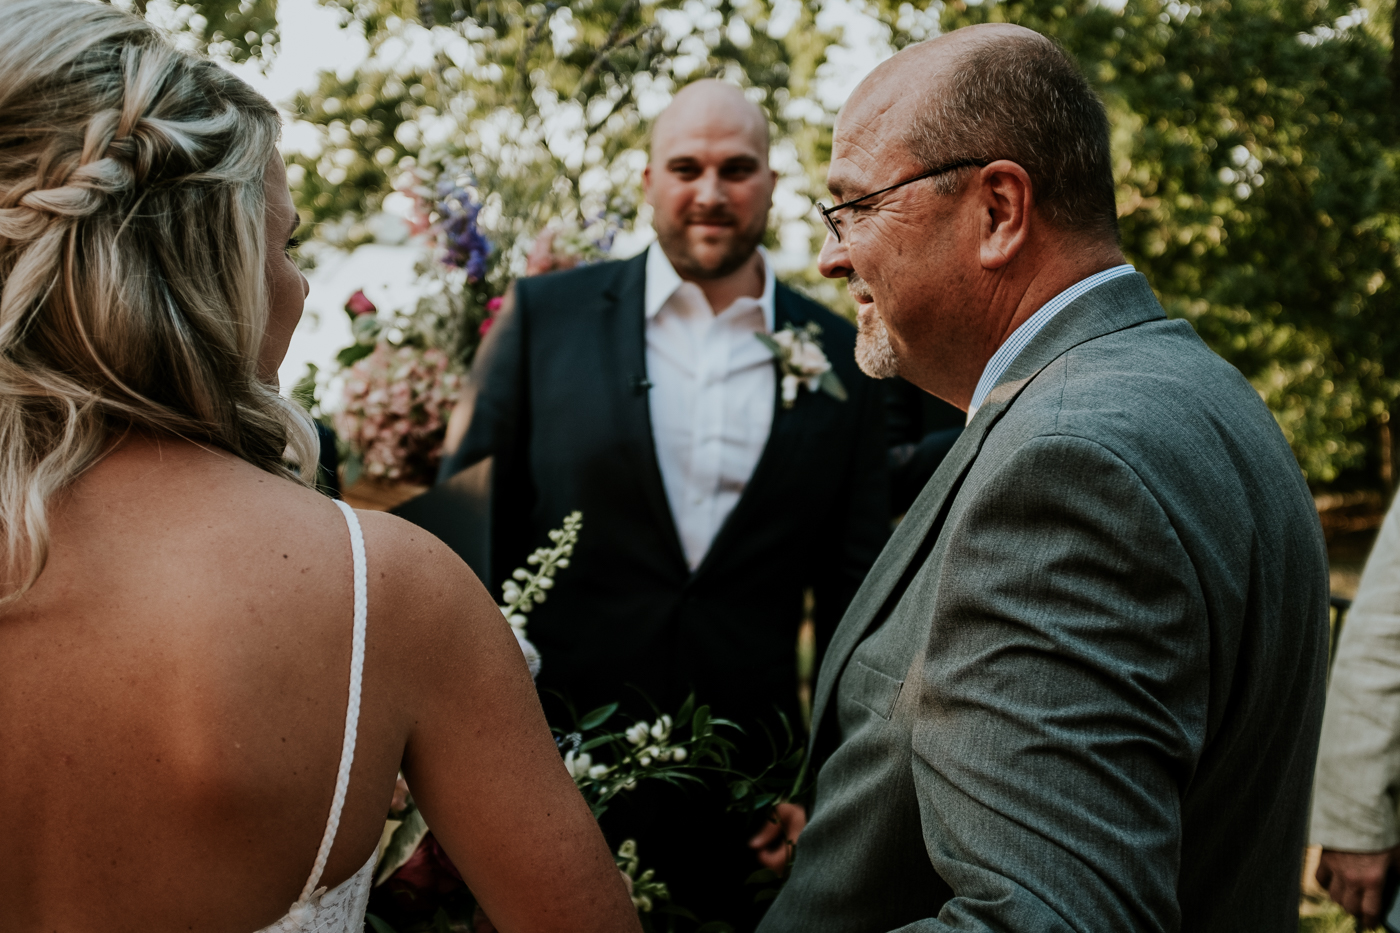 Haley+Kurtis.Blog©mileswittboyer.com2018-39.jpg